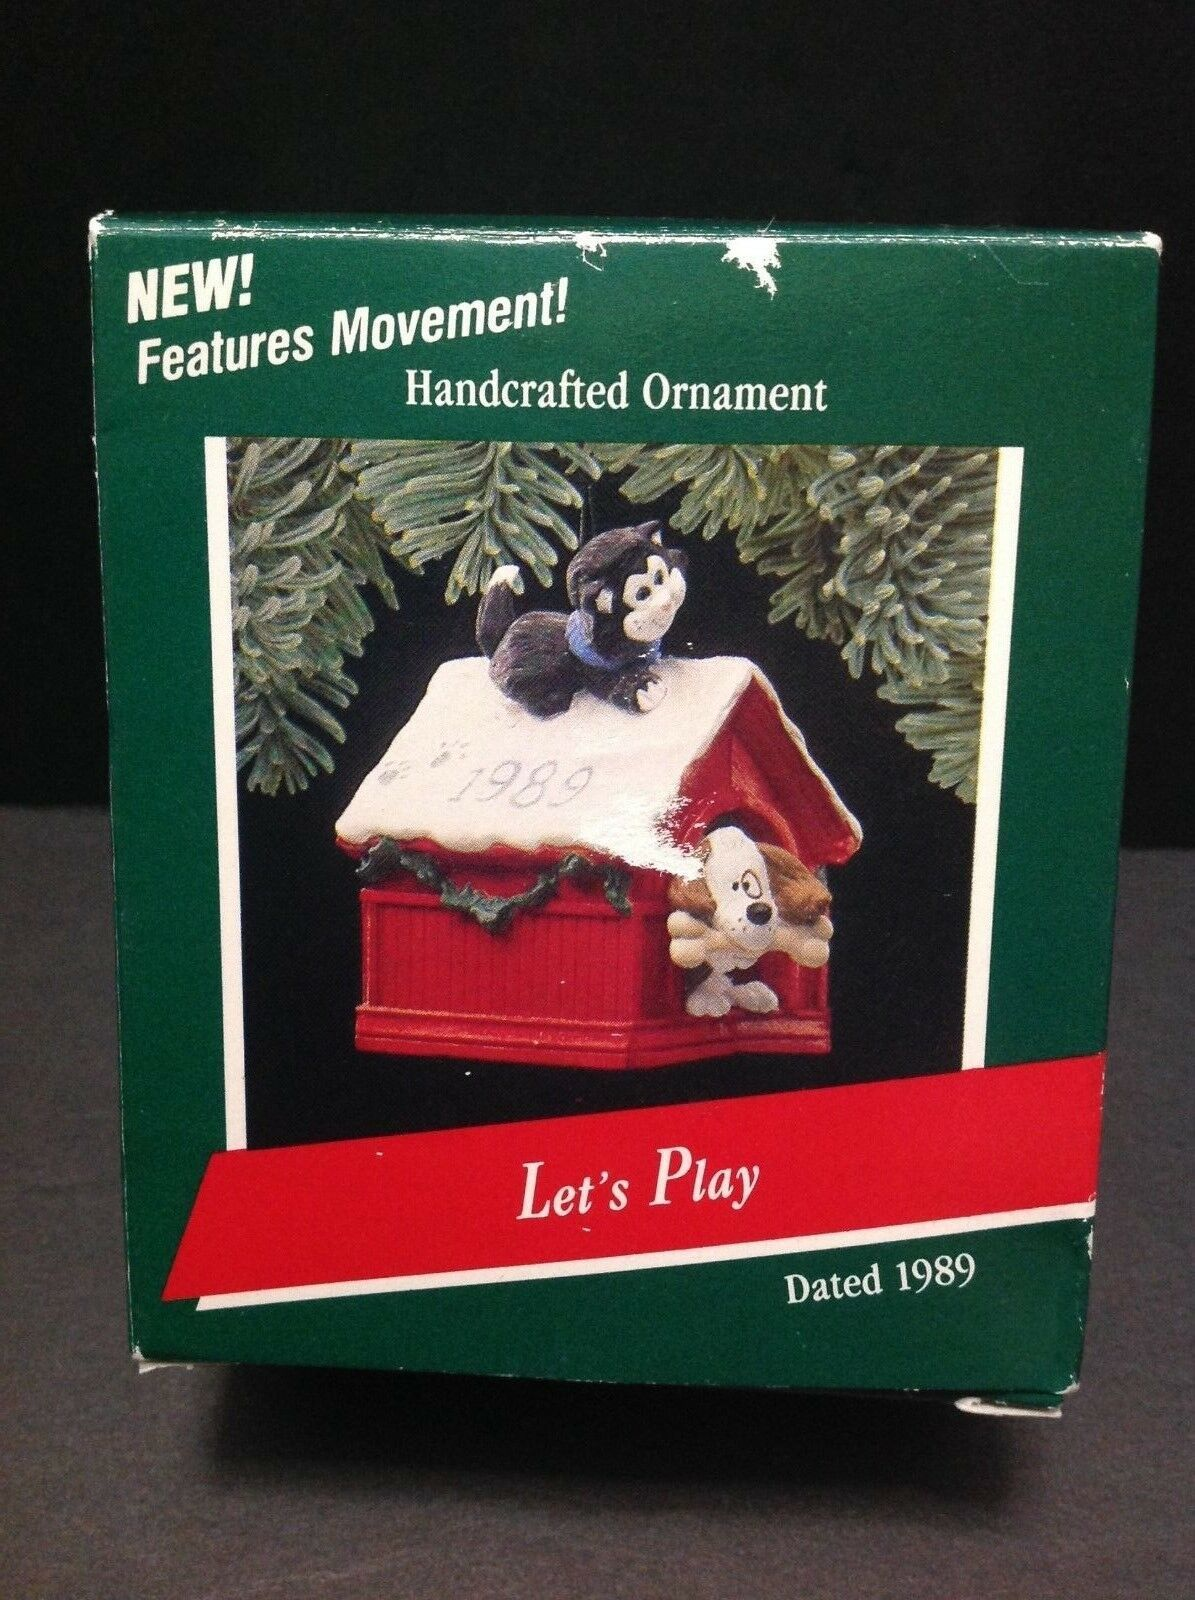 Primary image for Hallmark 1989 Let's Play Ornament Dog & Cat Dogs head moves, cats tail moves